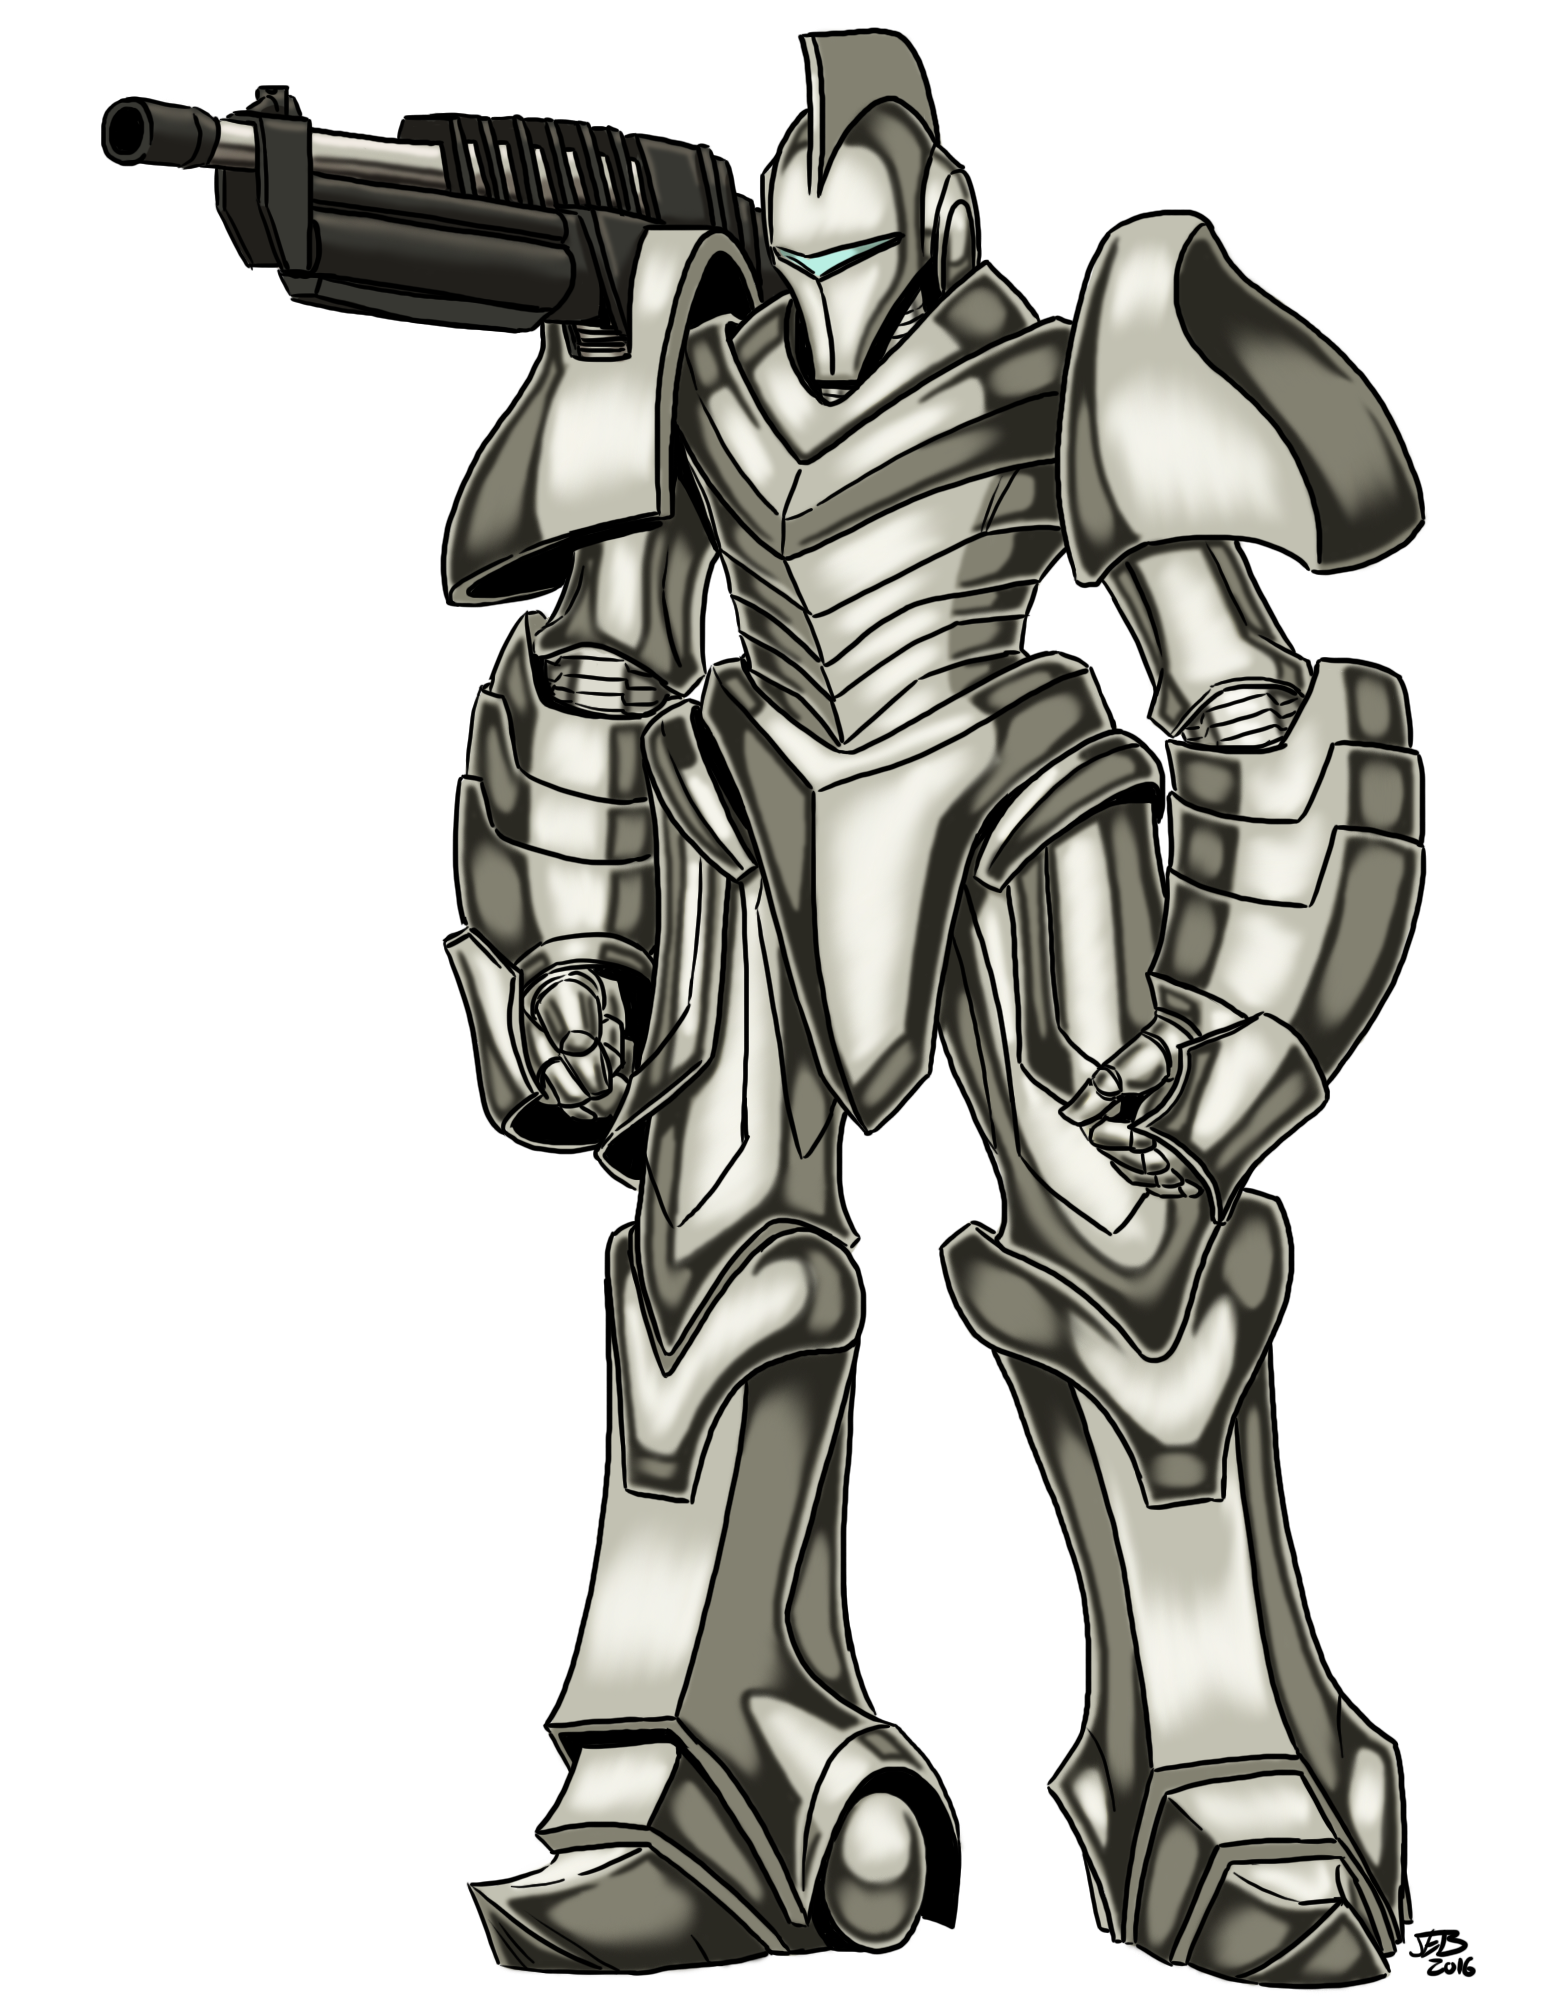 Fighter drawing armor. Manticore by prodigyduck on